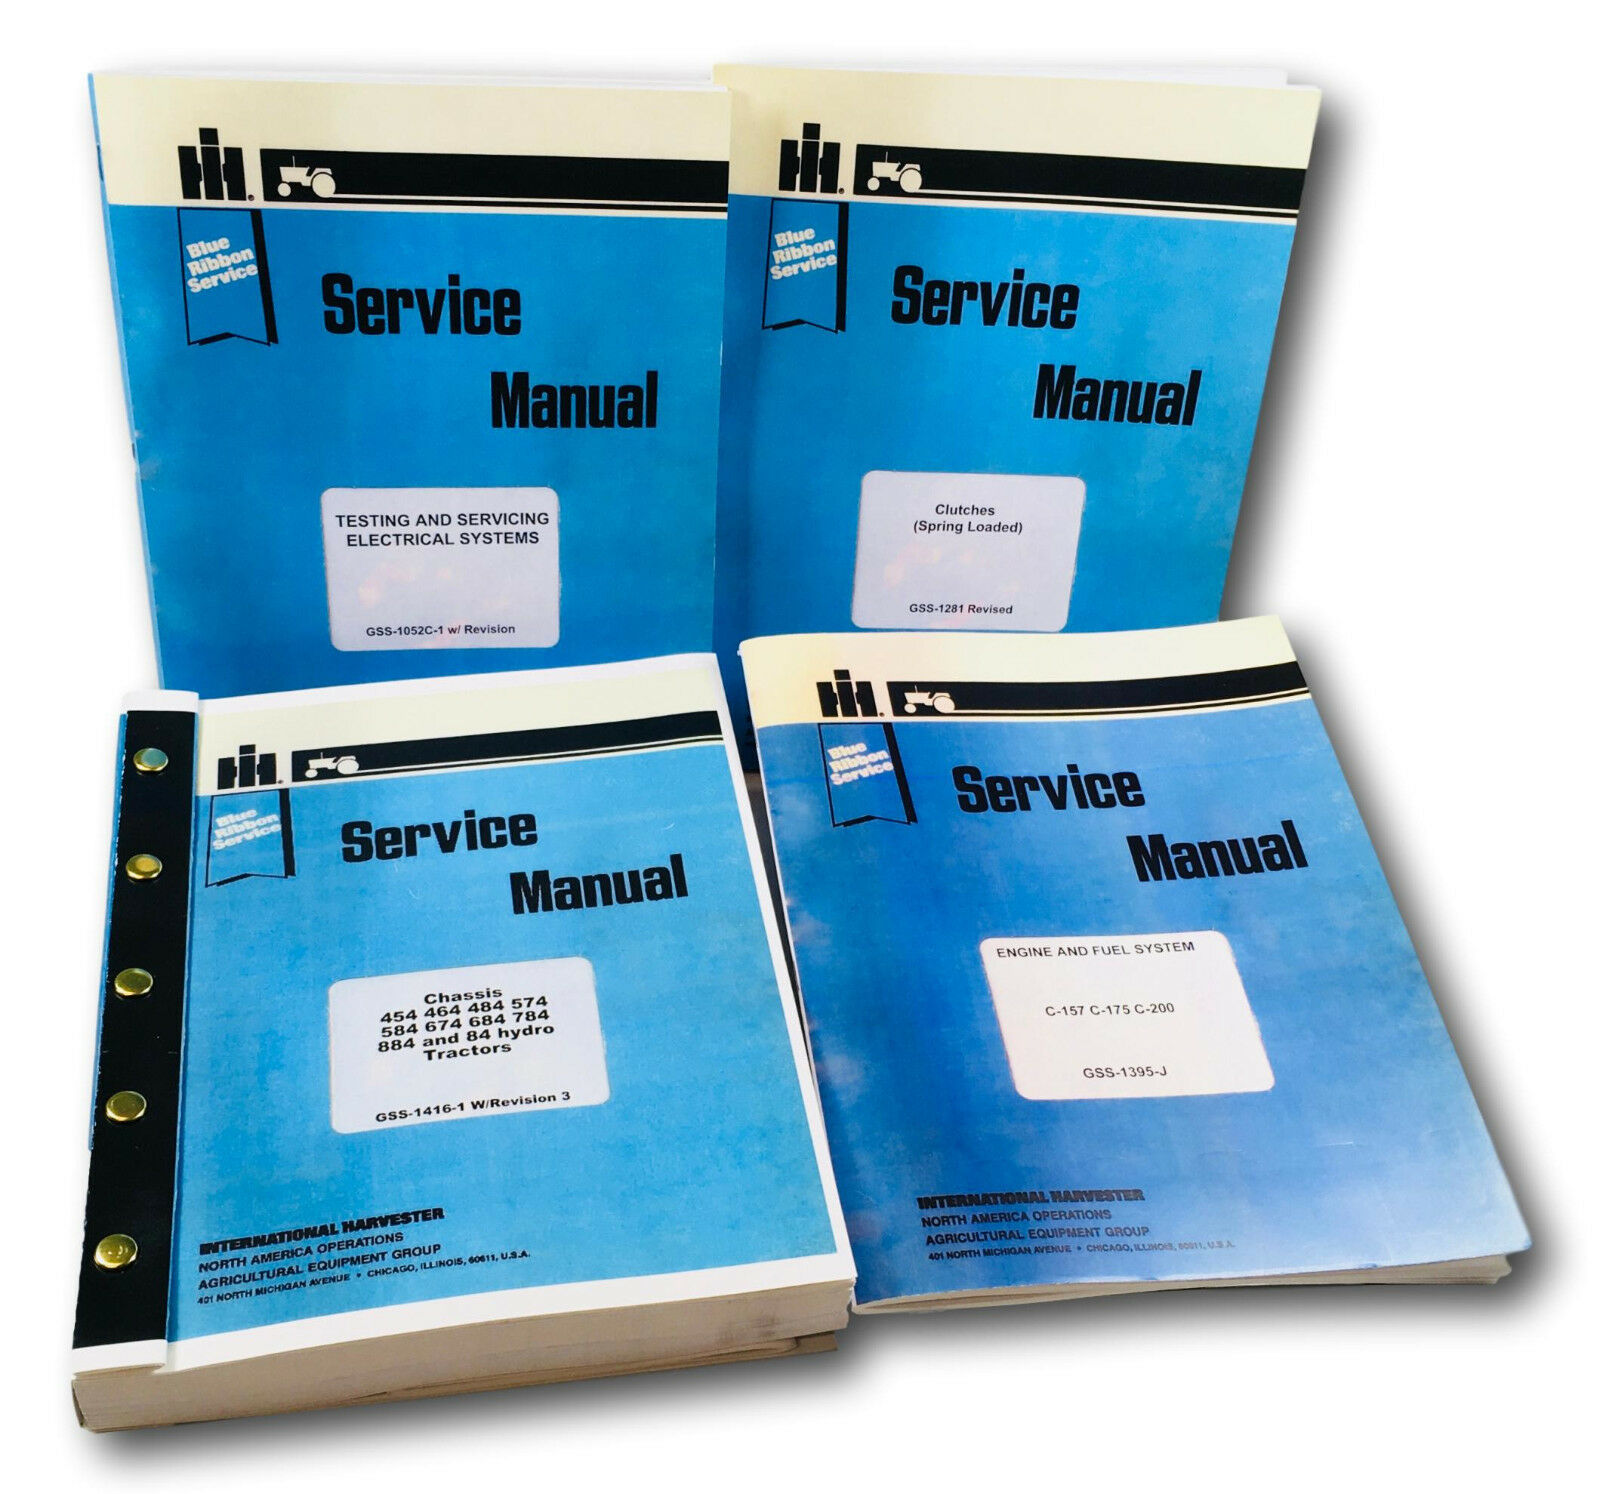 Most complete and up-to-date original equipment manufacturers manuals  available. Includes all revisions if available.